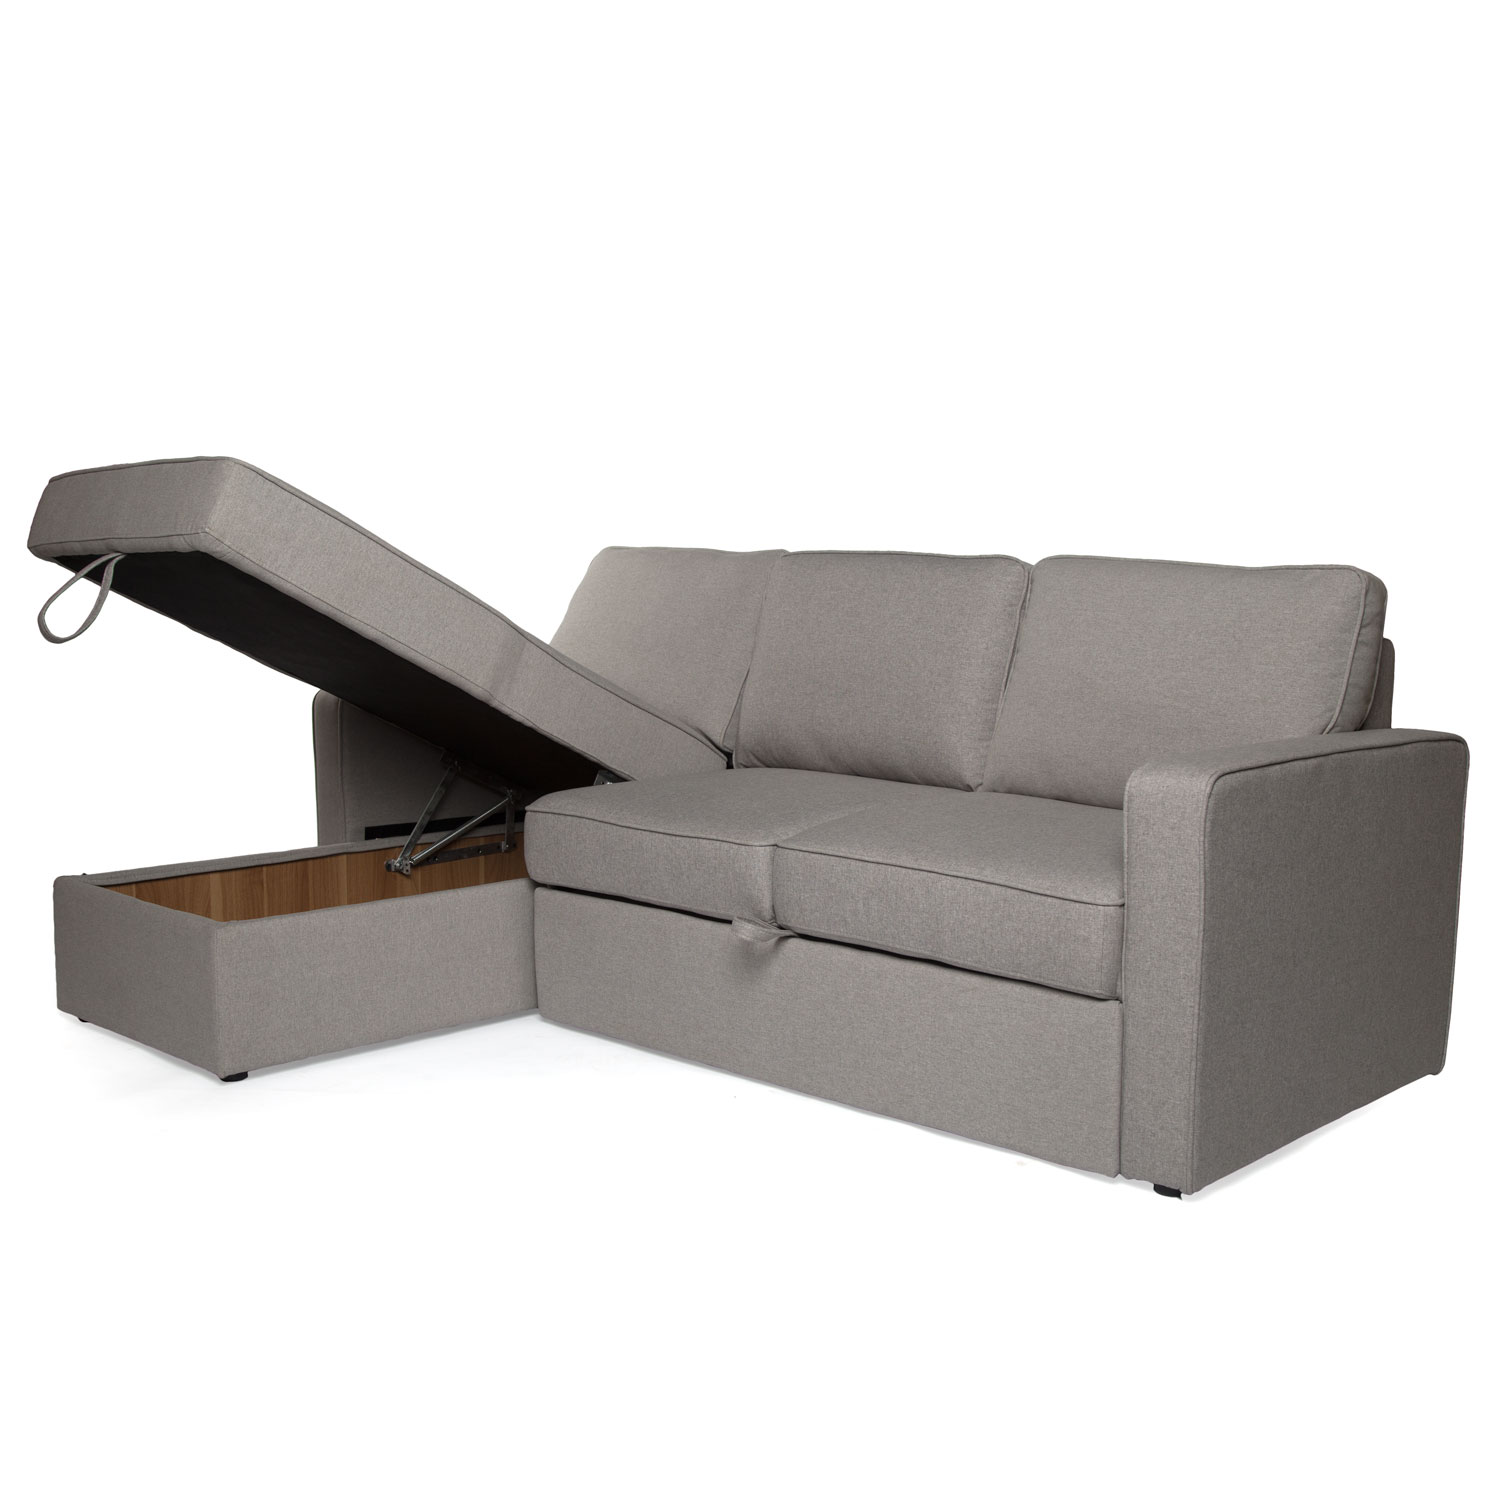 Sofa Bed With Storage Home Interior